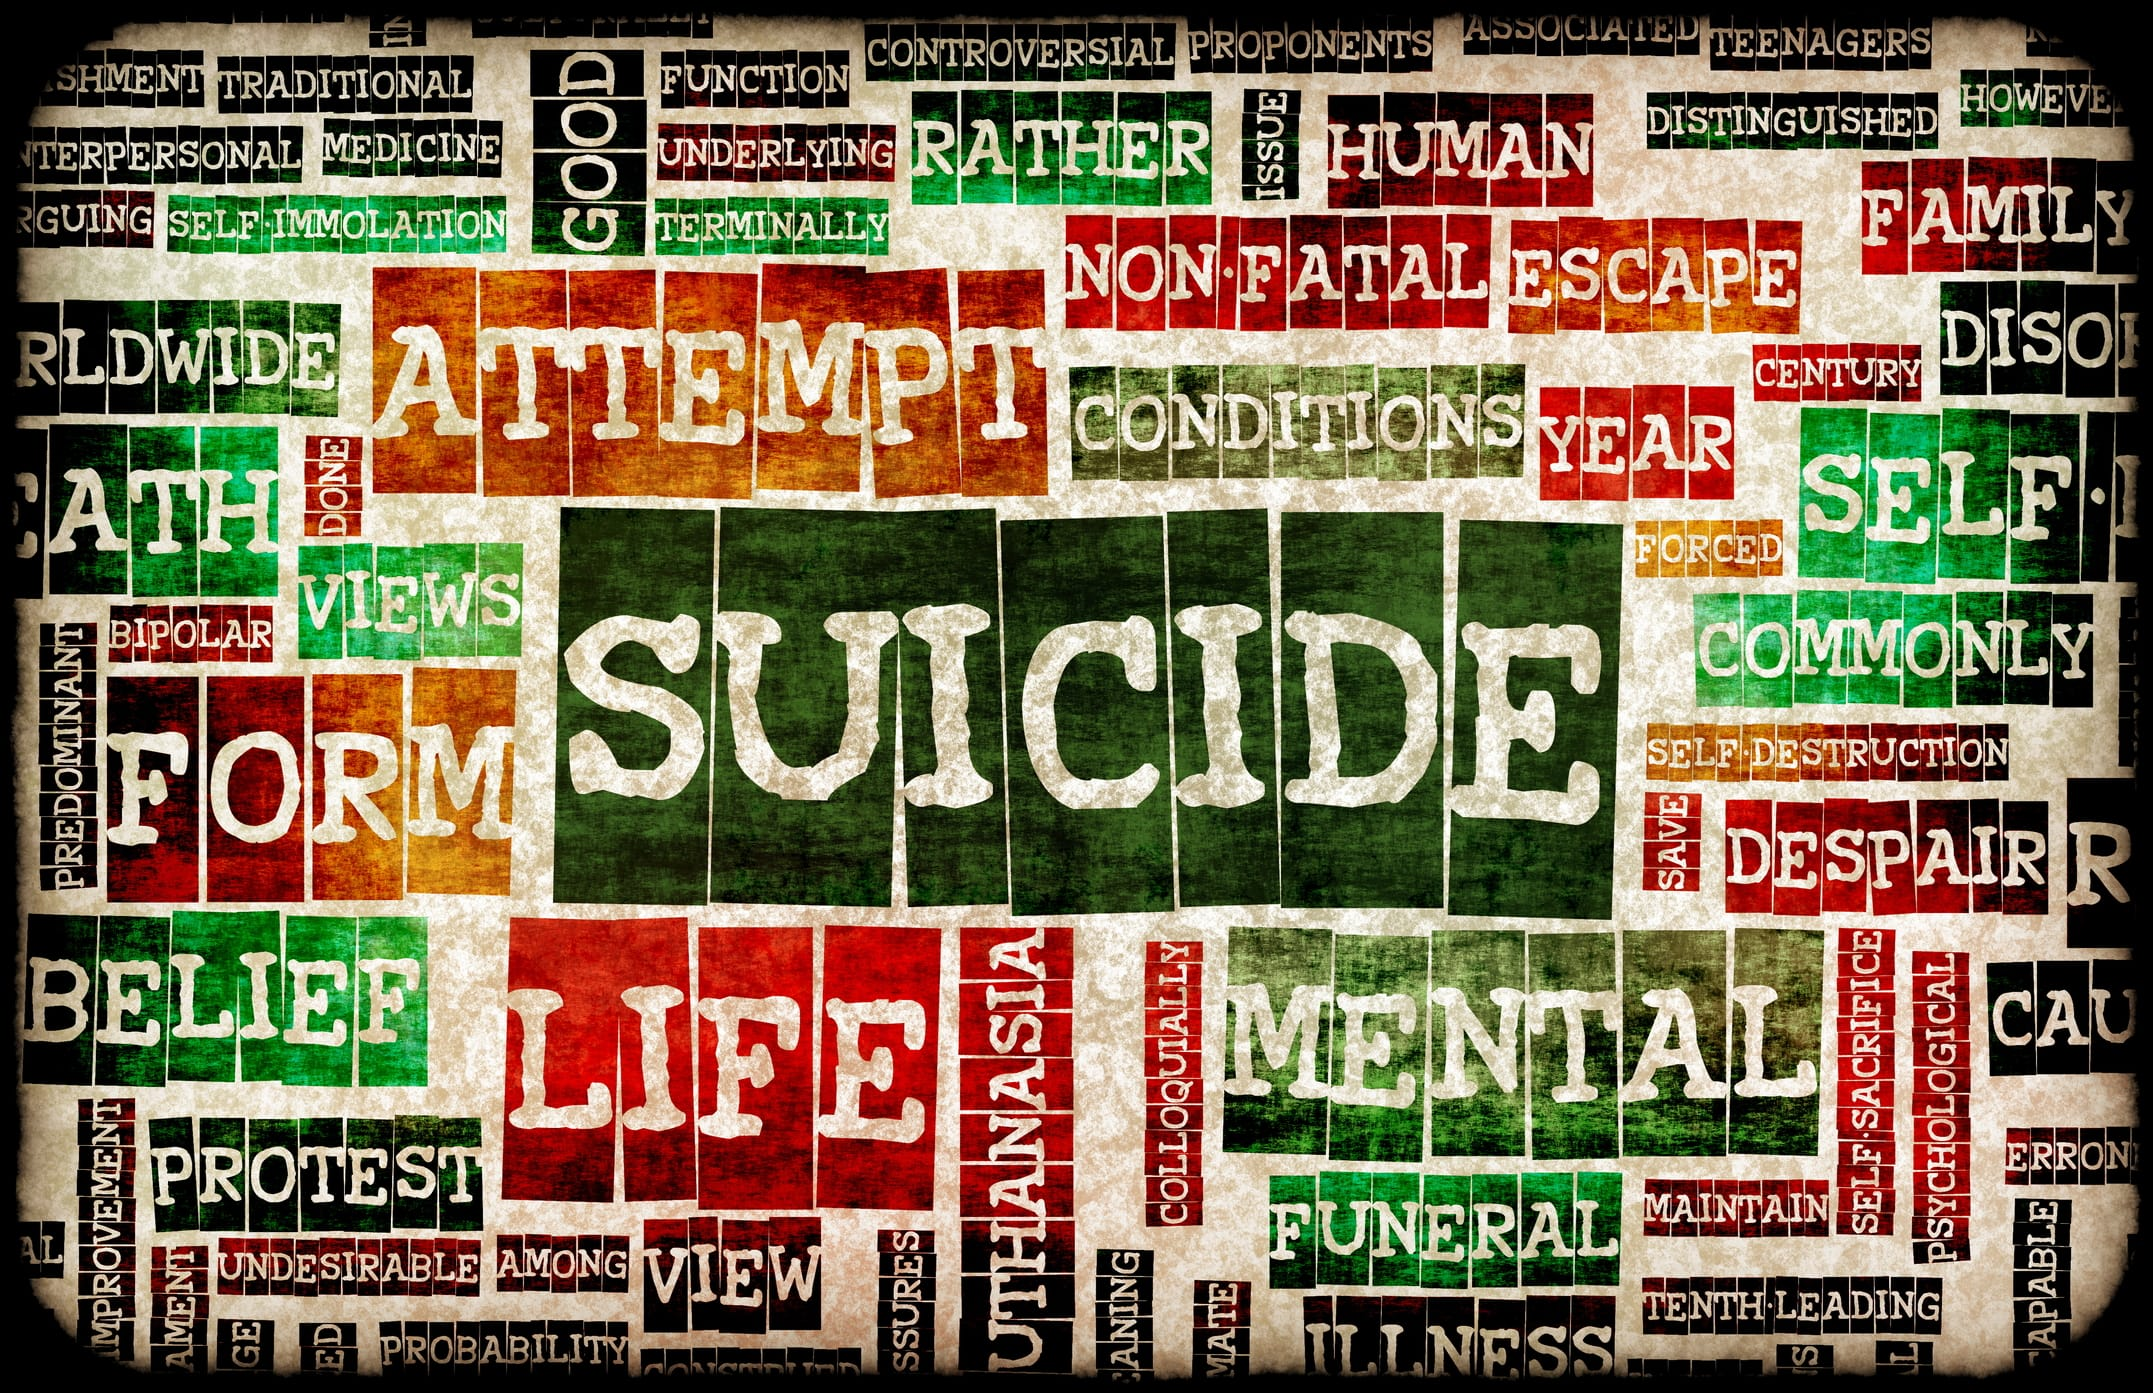 Is Suicide an Unforgivable Sin?